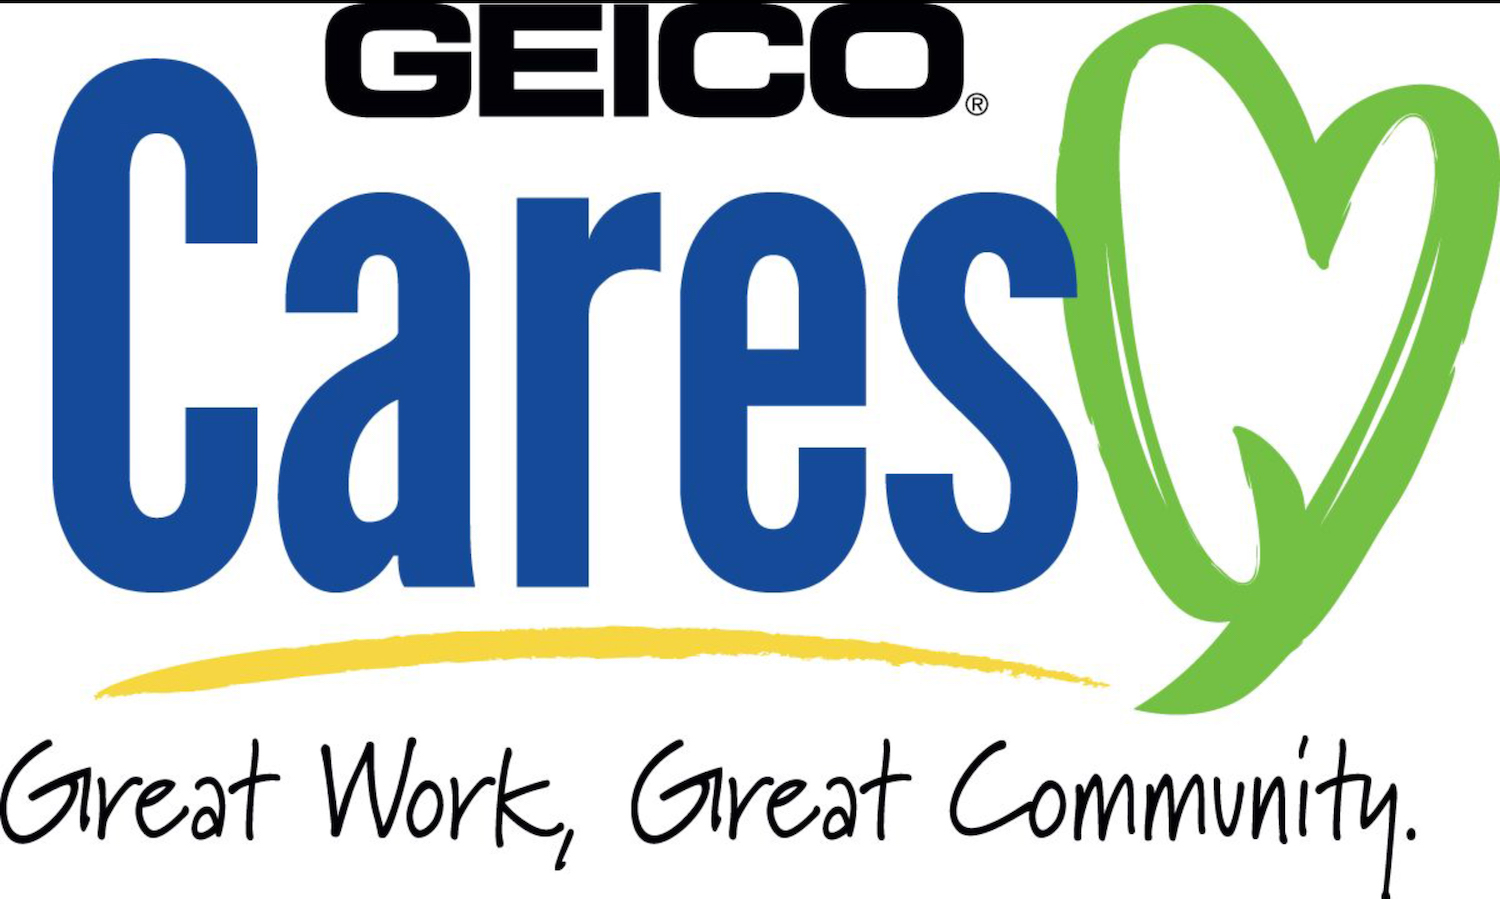 GEICO-Cares-Stacked.jpg